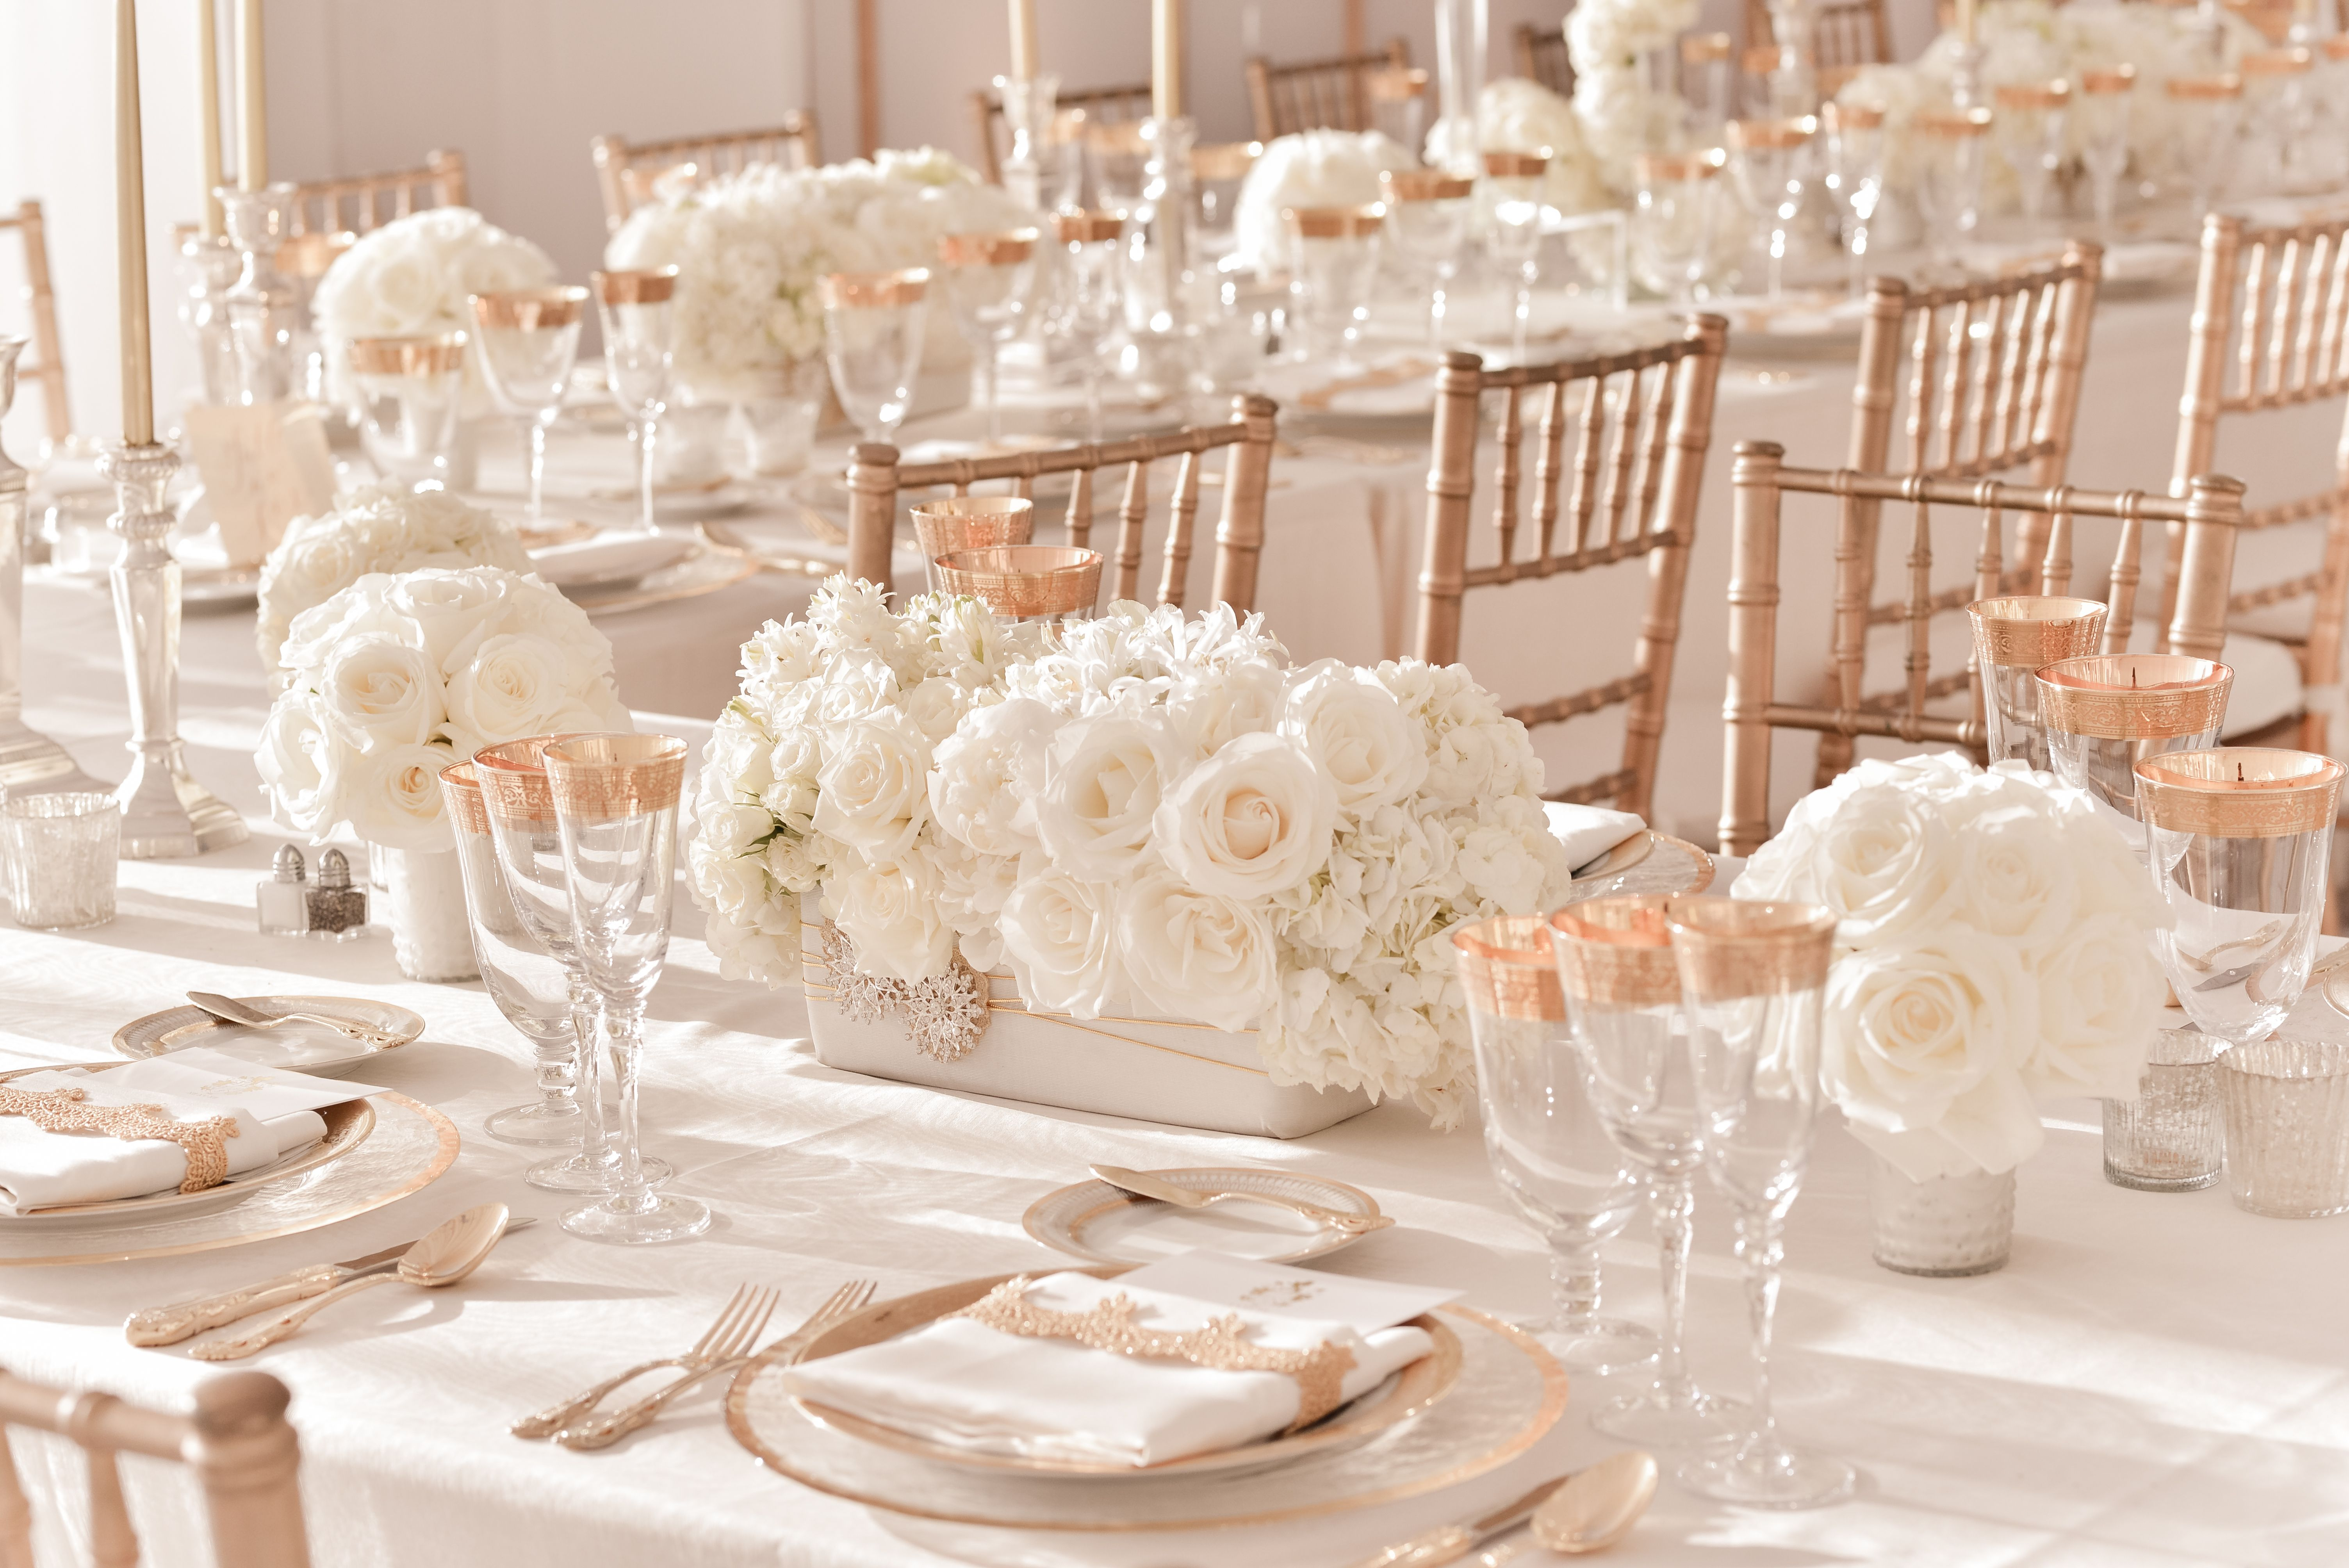 Wedding decor all white  Pix For ue Gold And White Wedding Centerpieces  Flowers  Pinterest